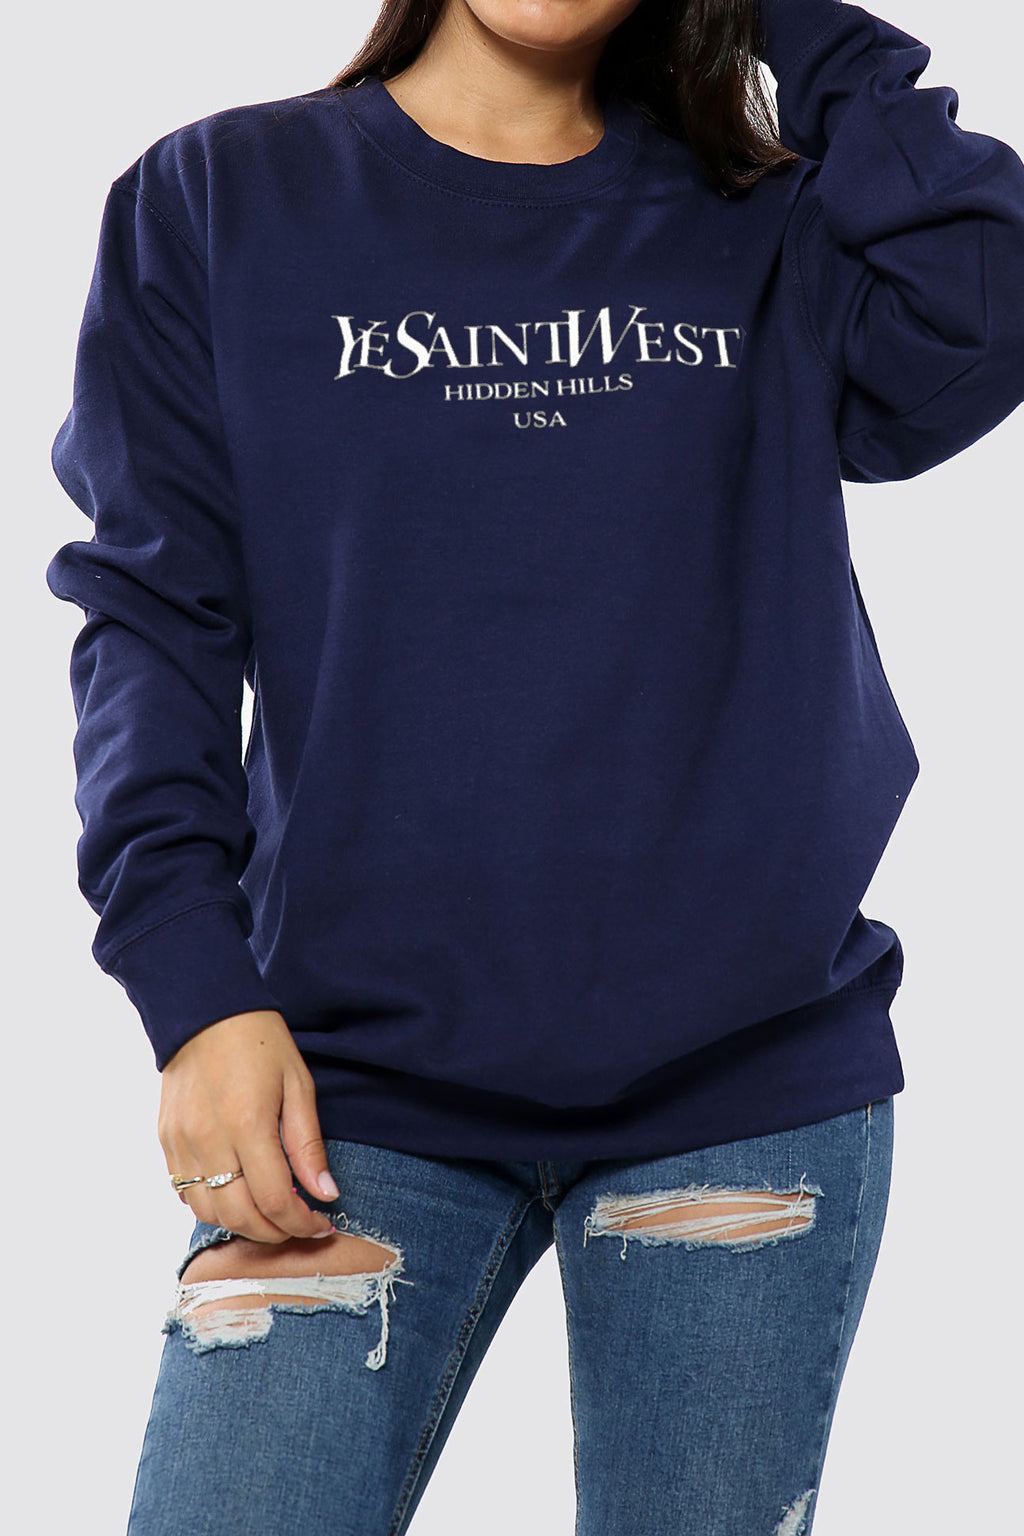 Fola Sweatshirt| Navy Ye Saint Sweatshirt - Timeless Springs